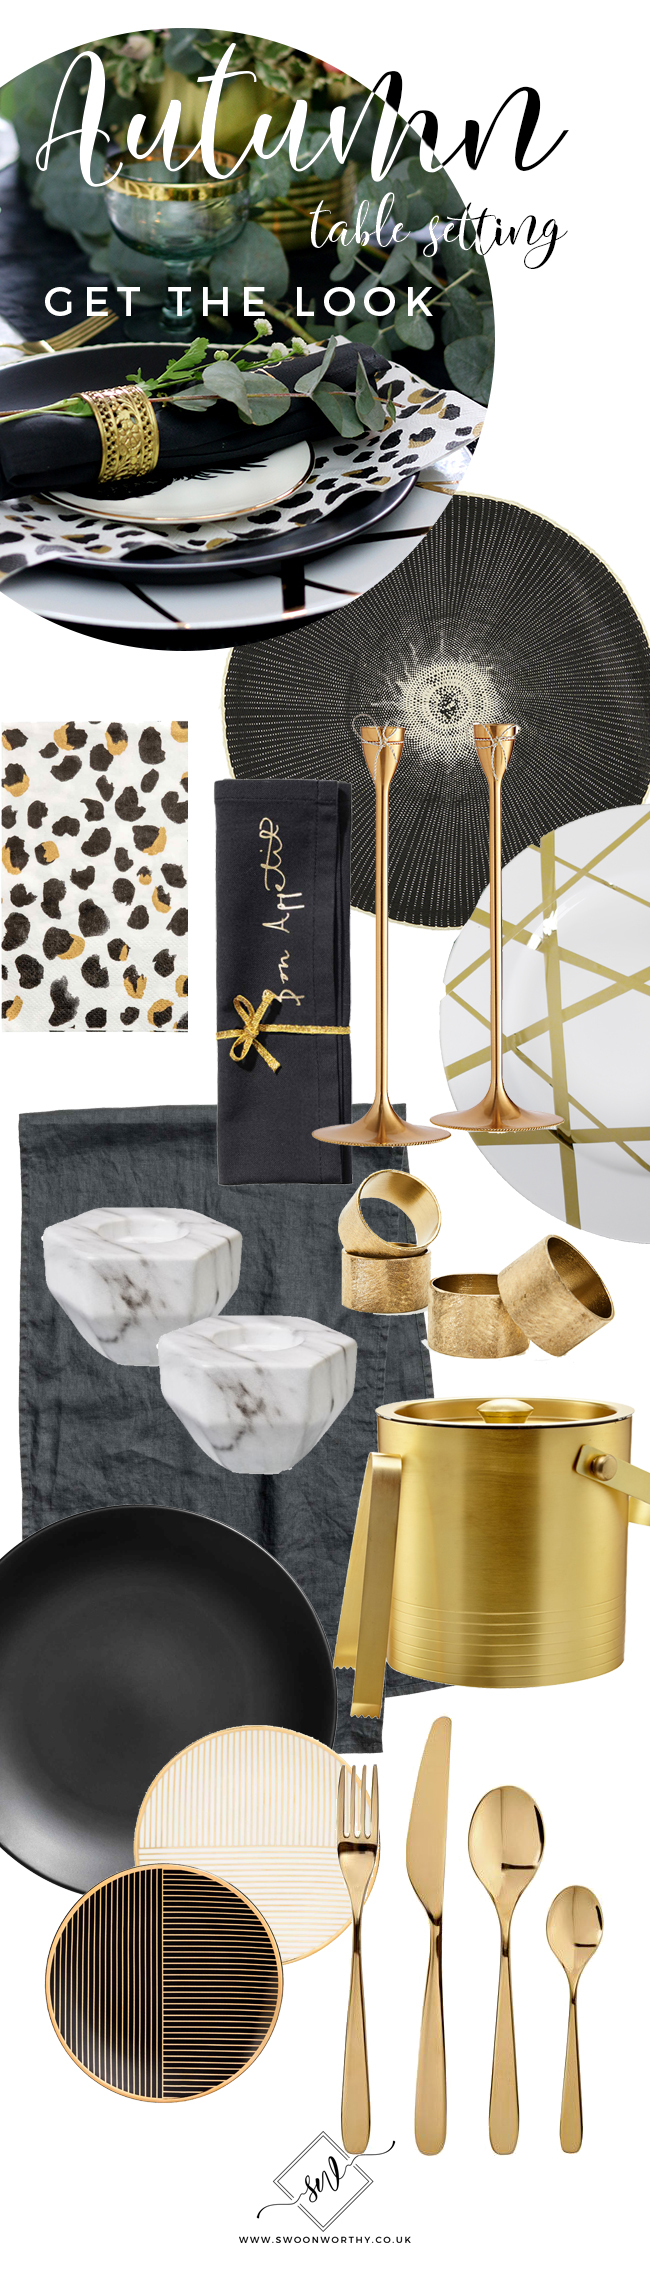 Get the look of my Autumn tablescape with Black White and Gold accessories.